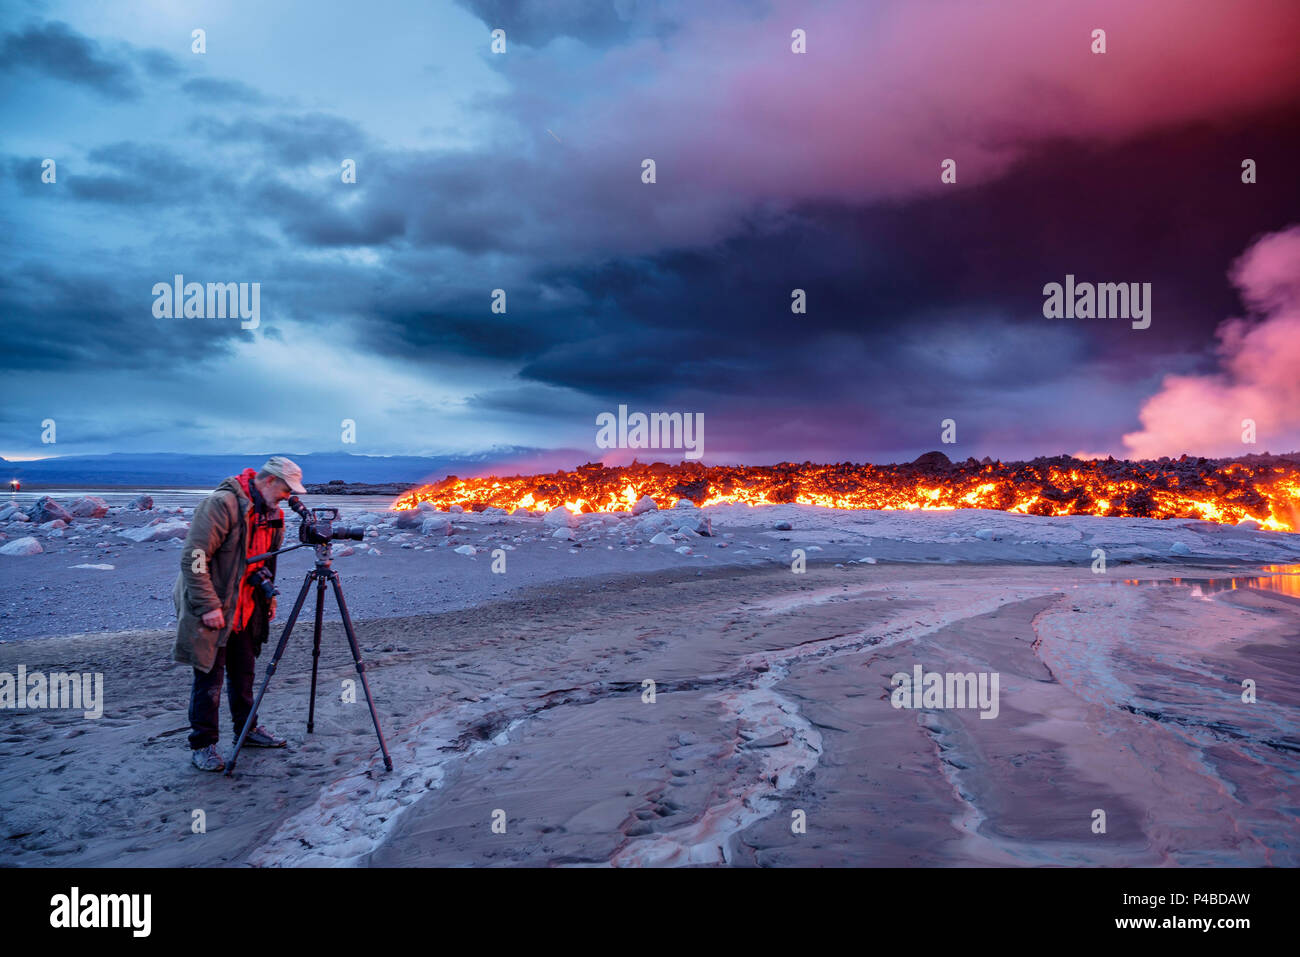 Photographer filming the volcano eruption at the Holuhraun Fissure, near the Bardarbunga Volcano, Iceland. August 29, 2014 a fissure eruption started in Holuhraun at the northern end of a magma intrusion, which had moved progressively north, from the Bardarbunga volcano, Picture Date-Sept. 2, 2014 - Stock Image